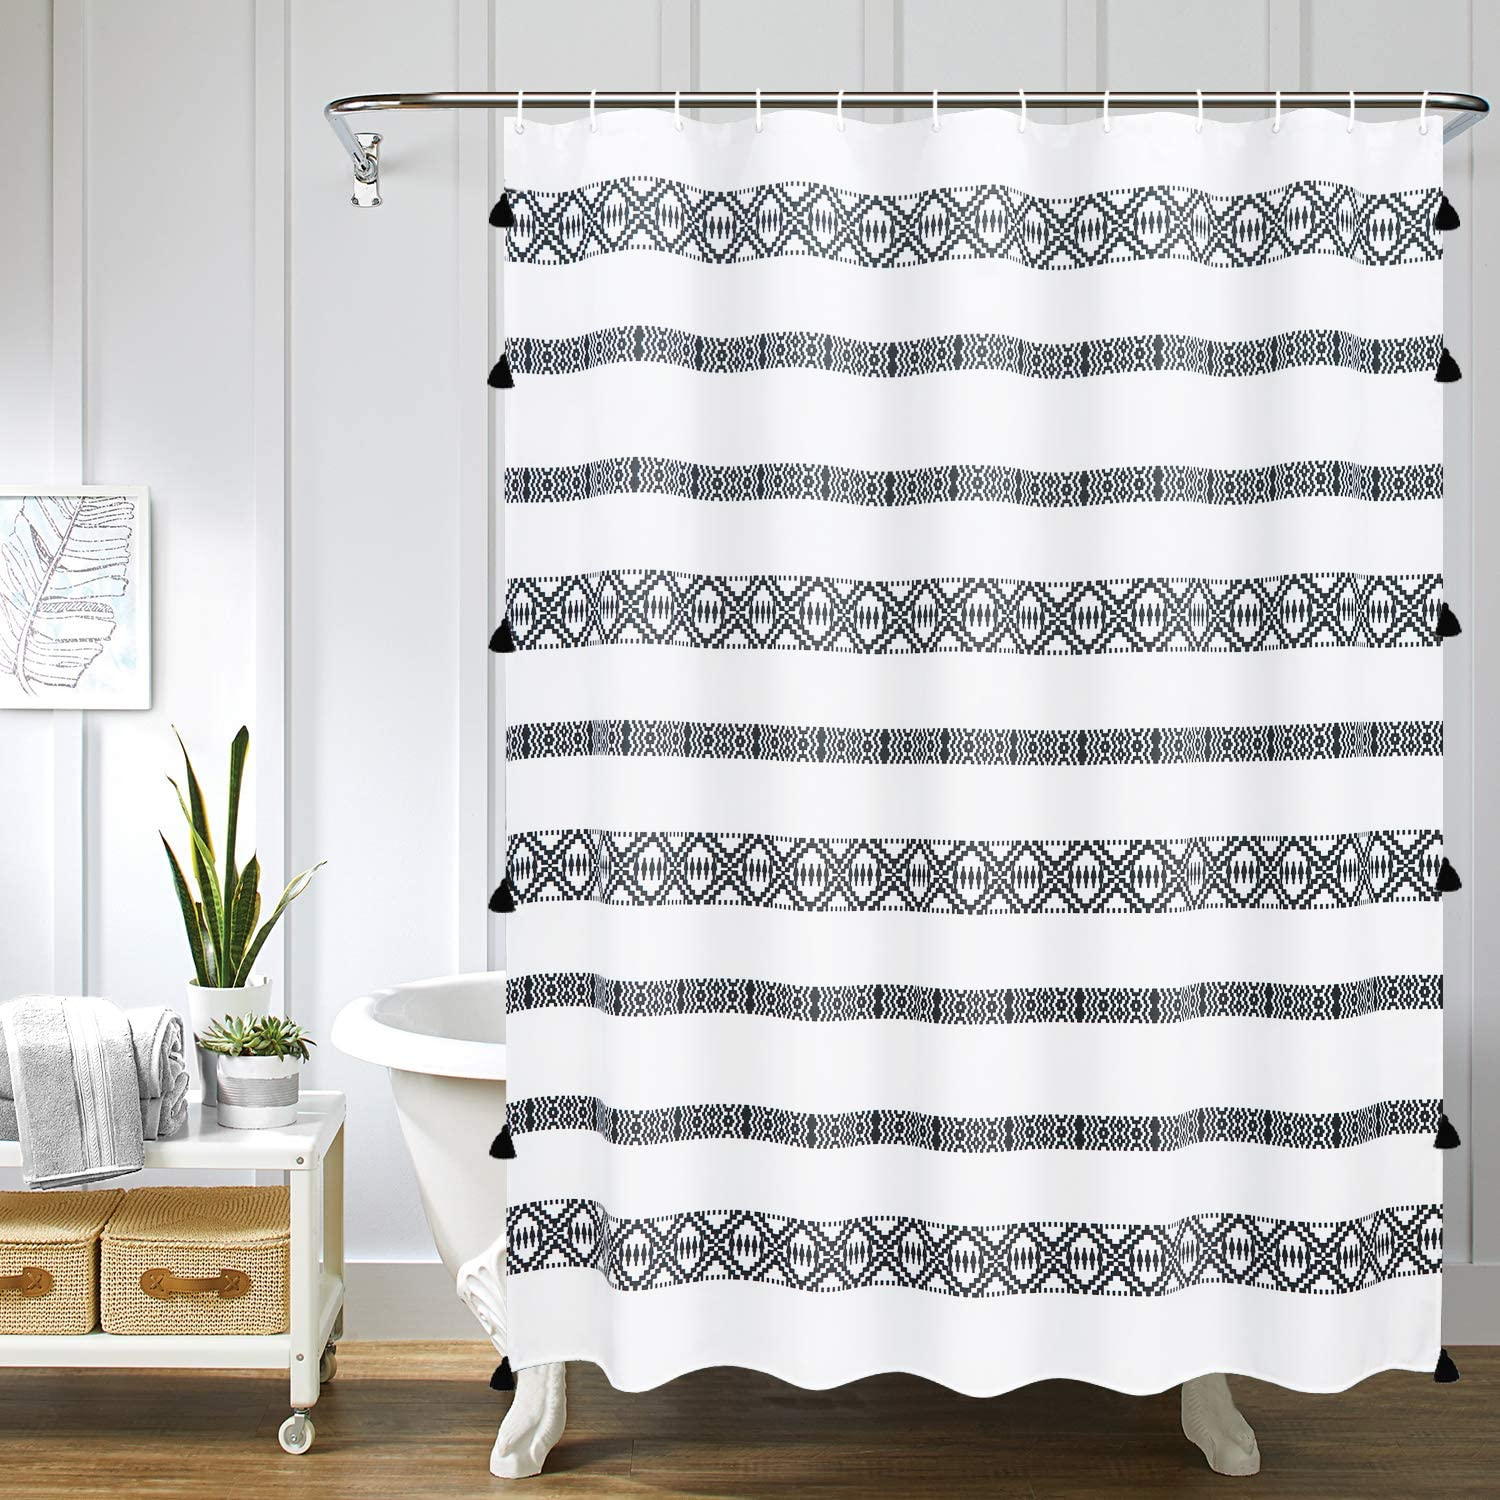 Uphome Fabric Boho Shower Curtain Black and White Geometric Striped Tassel Shower Curtain Set with Hooks Chic Tribal Bathroom Decor Accessories Heavy Duty and Waterproof, 72x72